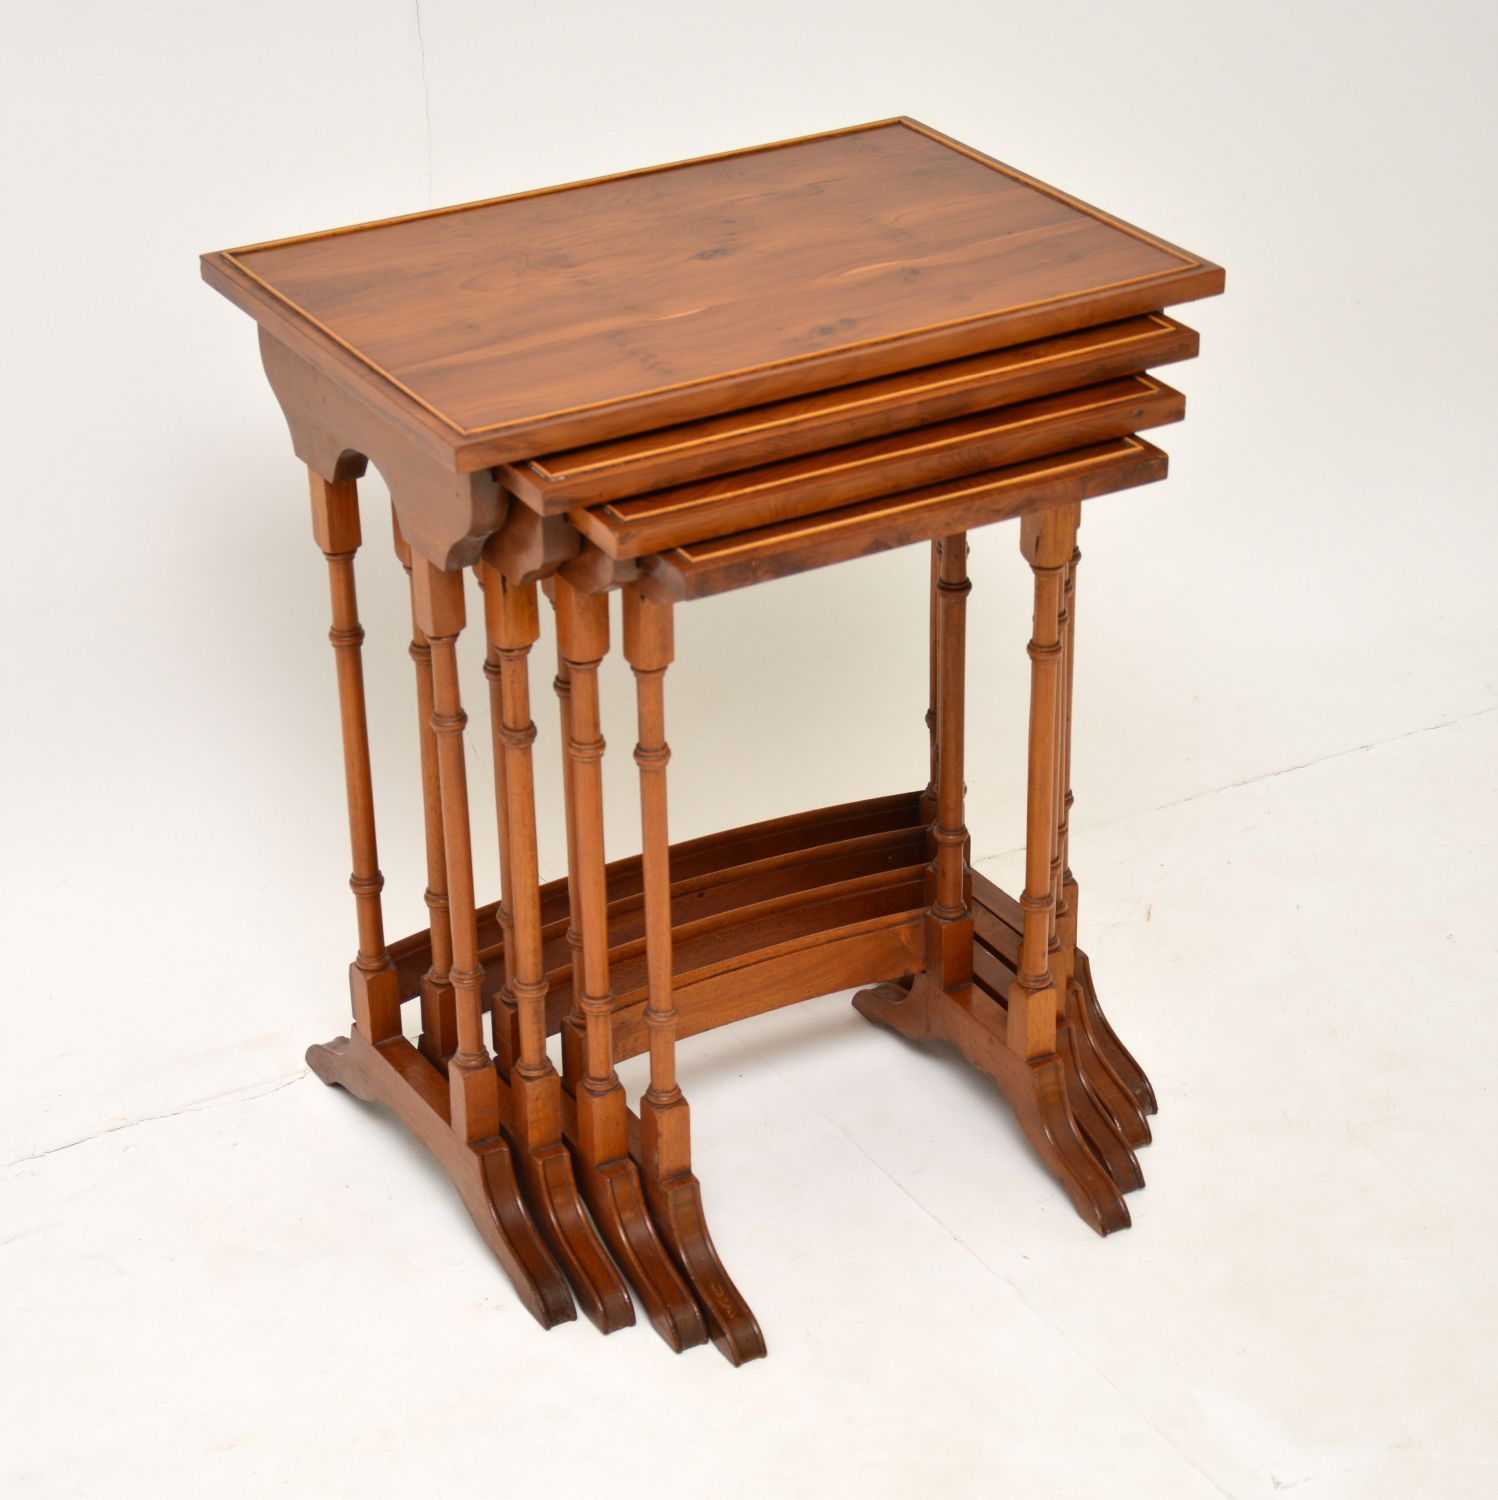 antique georgian yew wood nest of tables